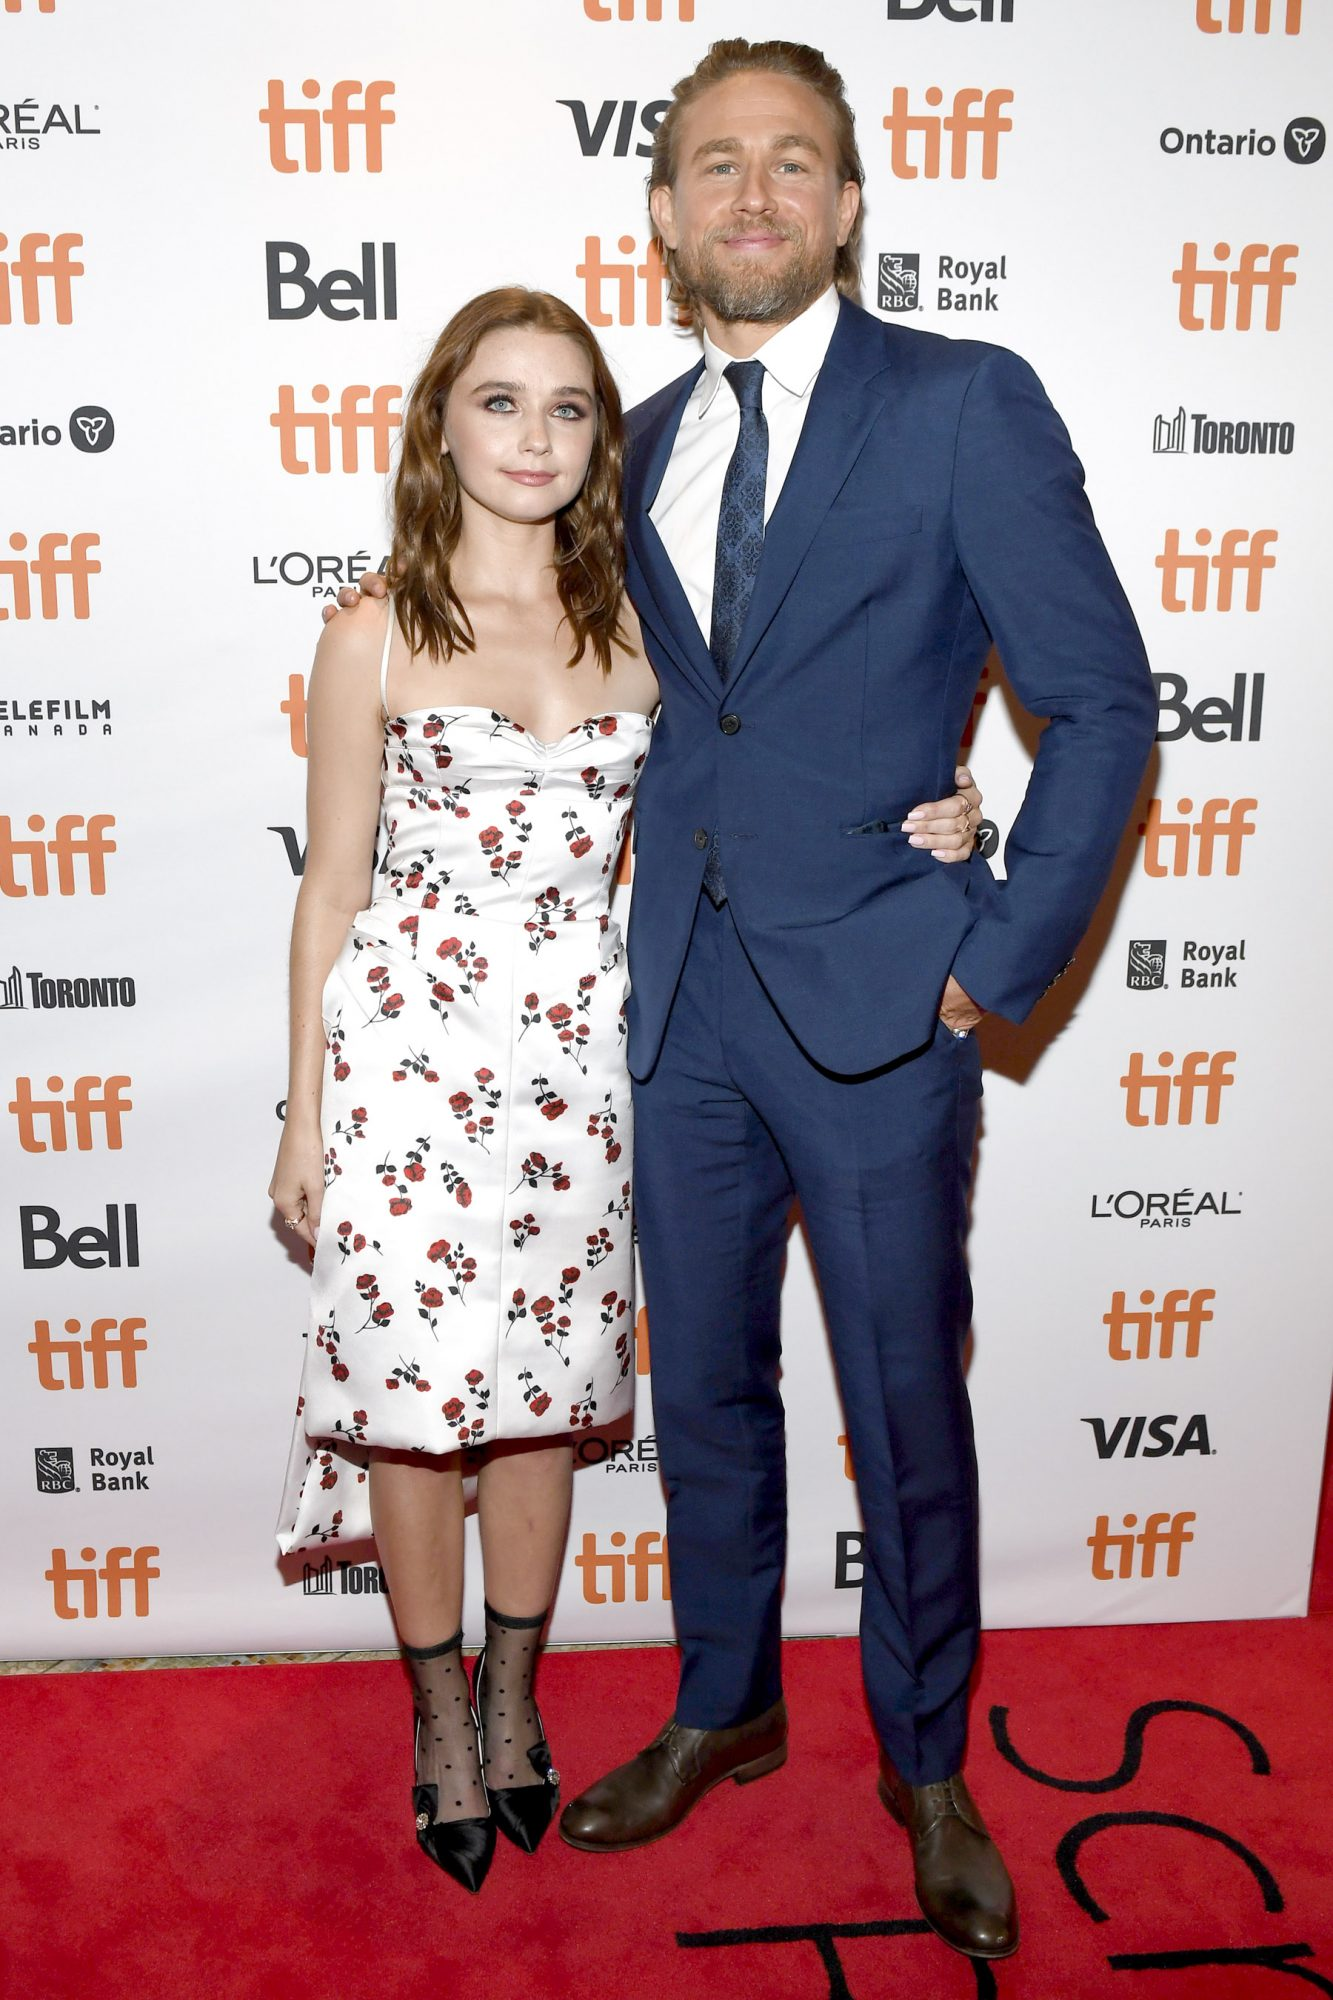 """TORONTO, ONTARIO - SEPTEMBER 12: (L-R) Jessica Barden and Charlie Hunnam attend the """"Jungleland"""" photo call during the 2019 Toronto International Film Festival at Princess of Wales Theatre on September 12, 2019 in Toronto, Canada. (Photo by Sonia Recchia/Getty Images)"""